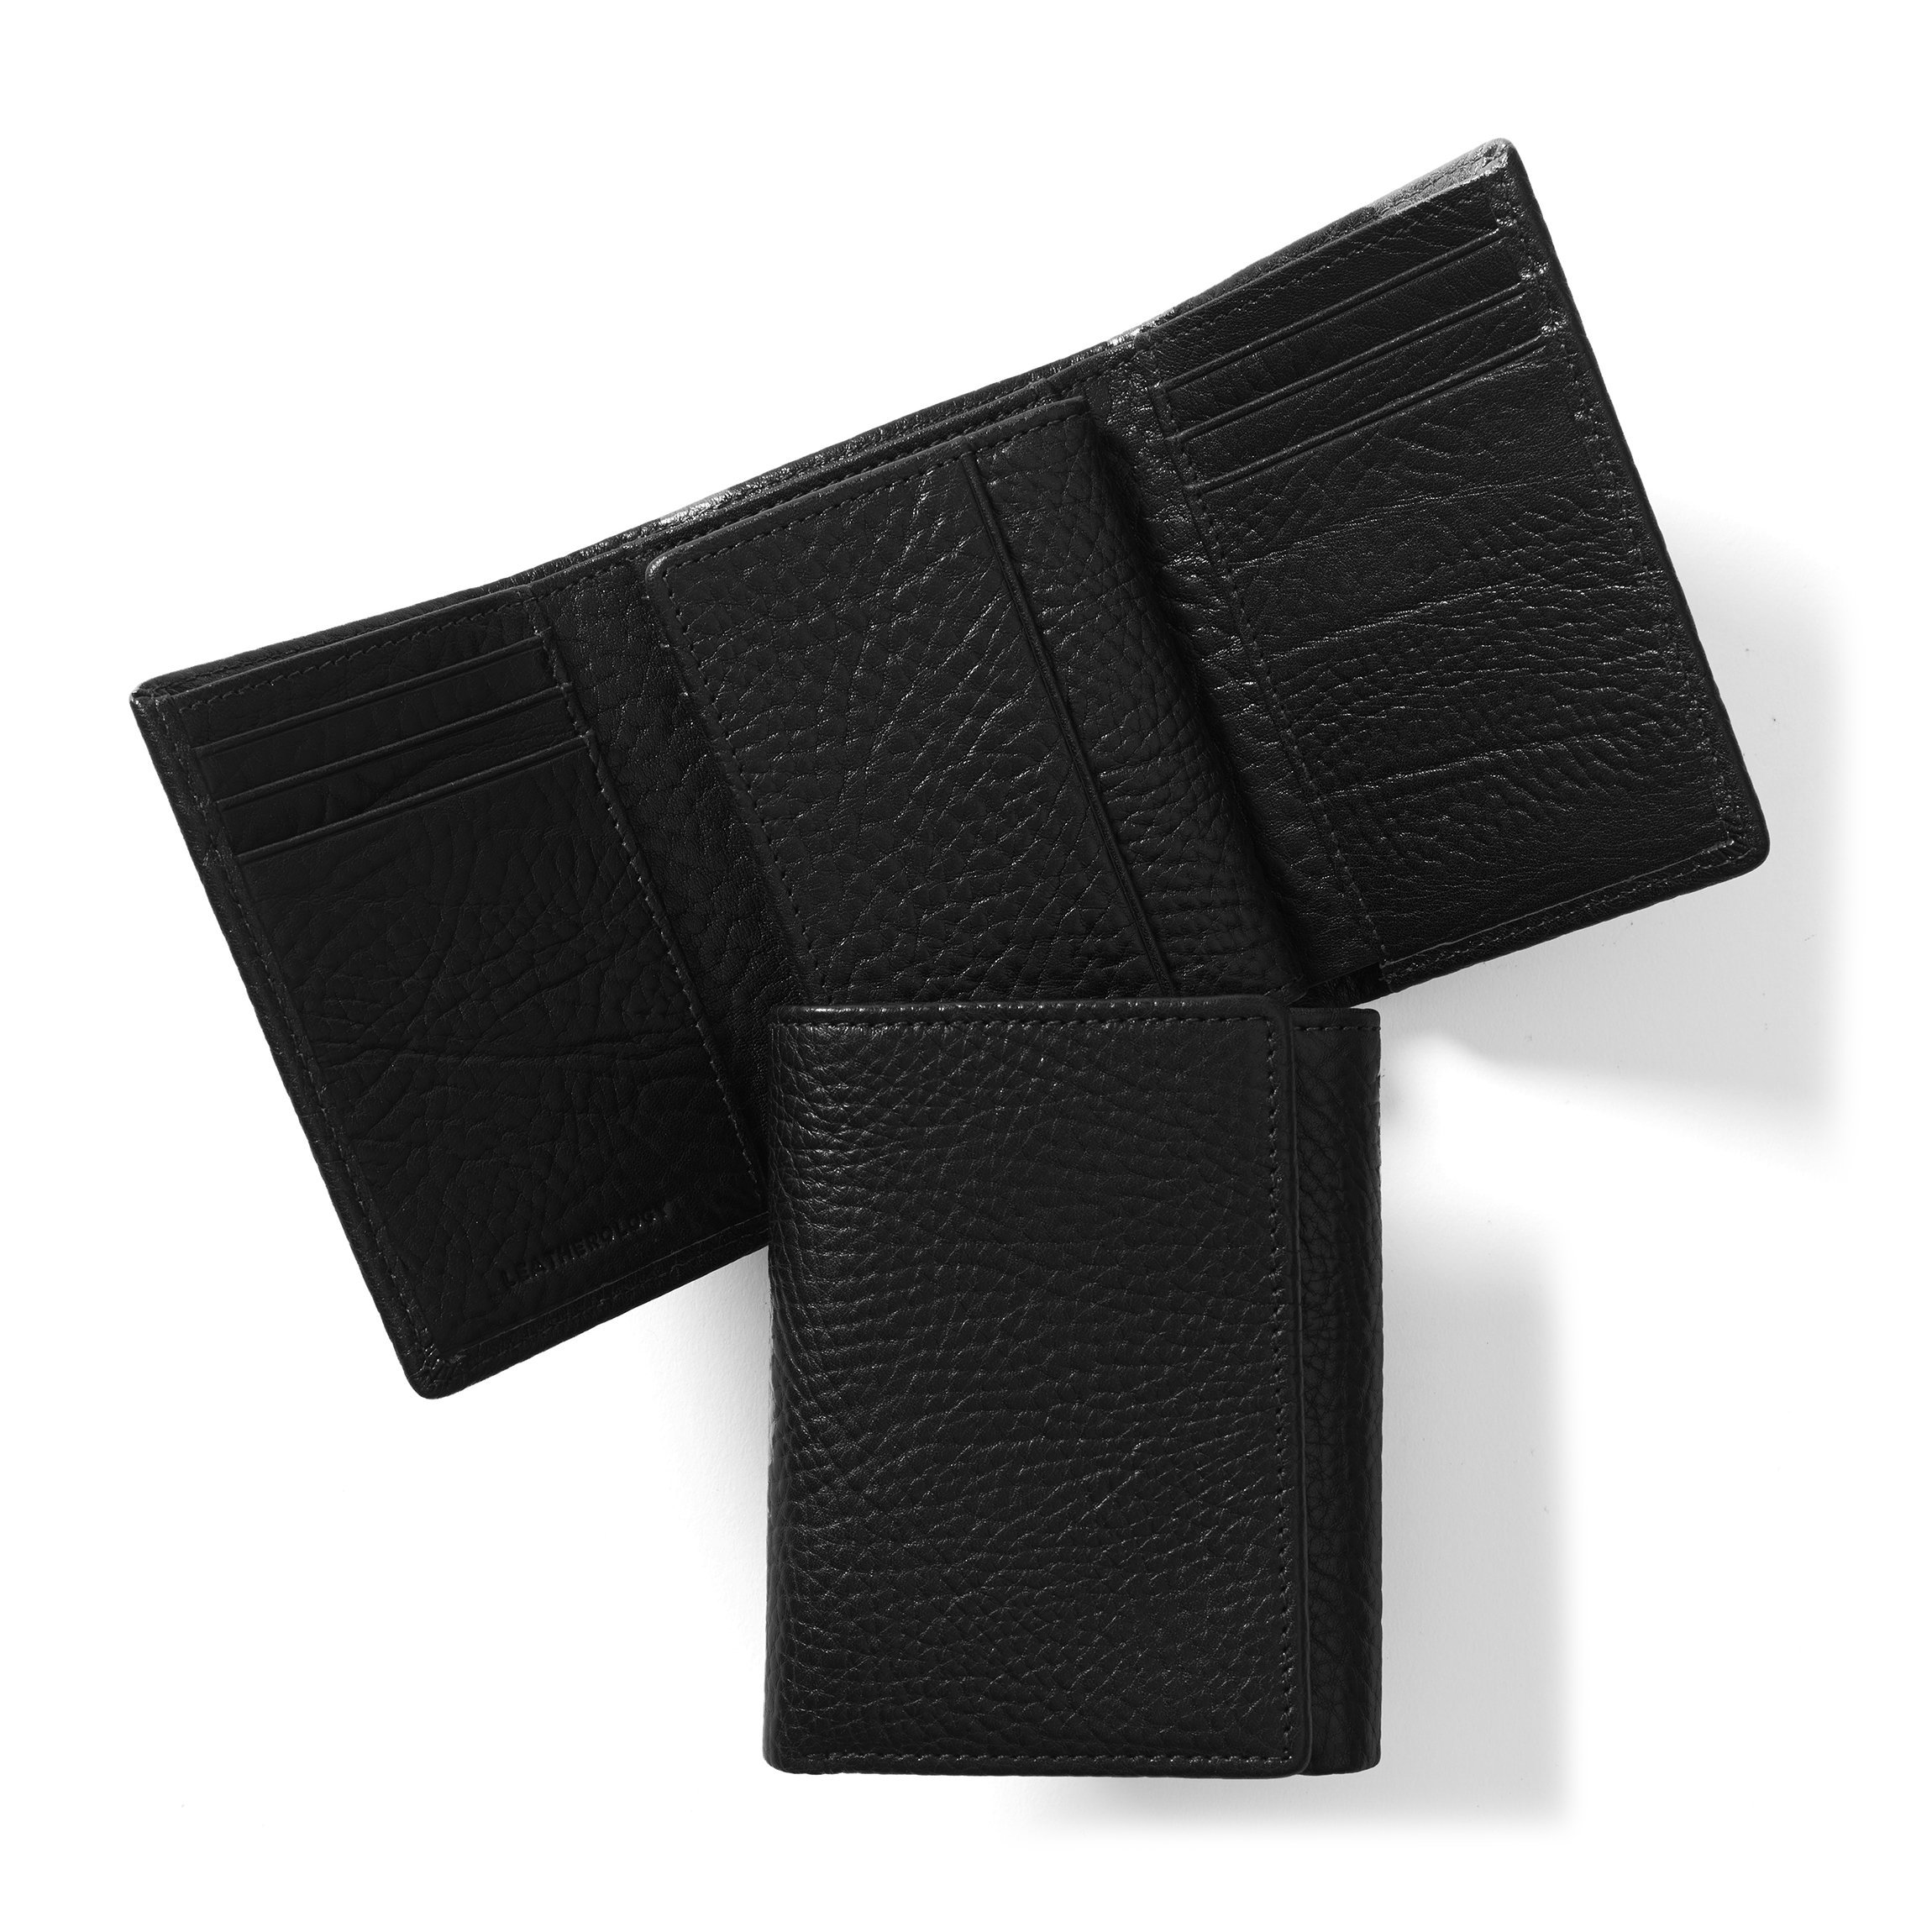 Trifold with Card Wallet - Full Grain Italian Leather Leather - Ebony (black) by Leatherology (Image #1)